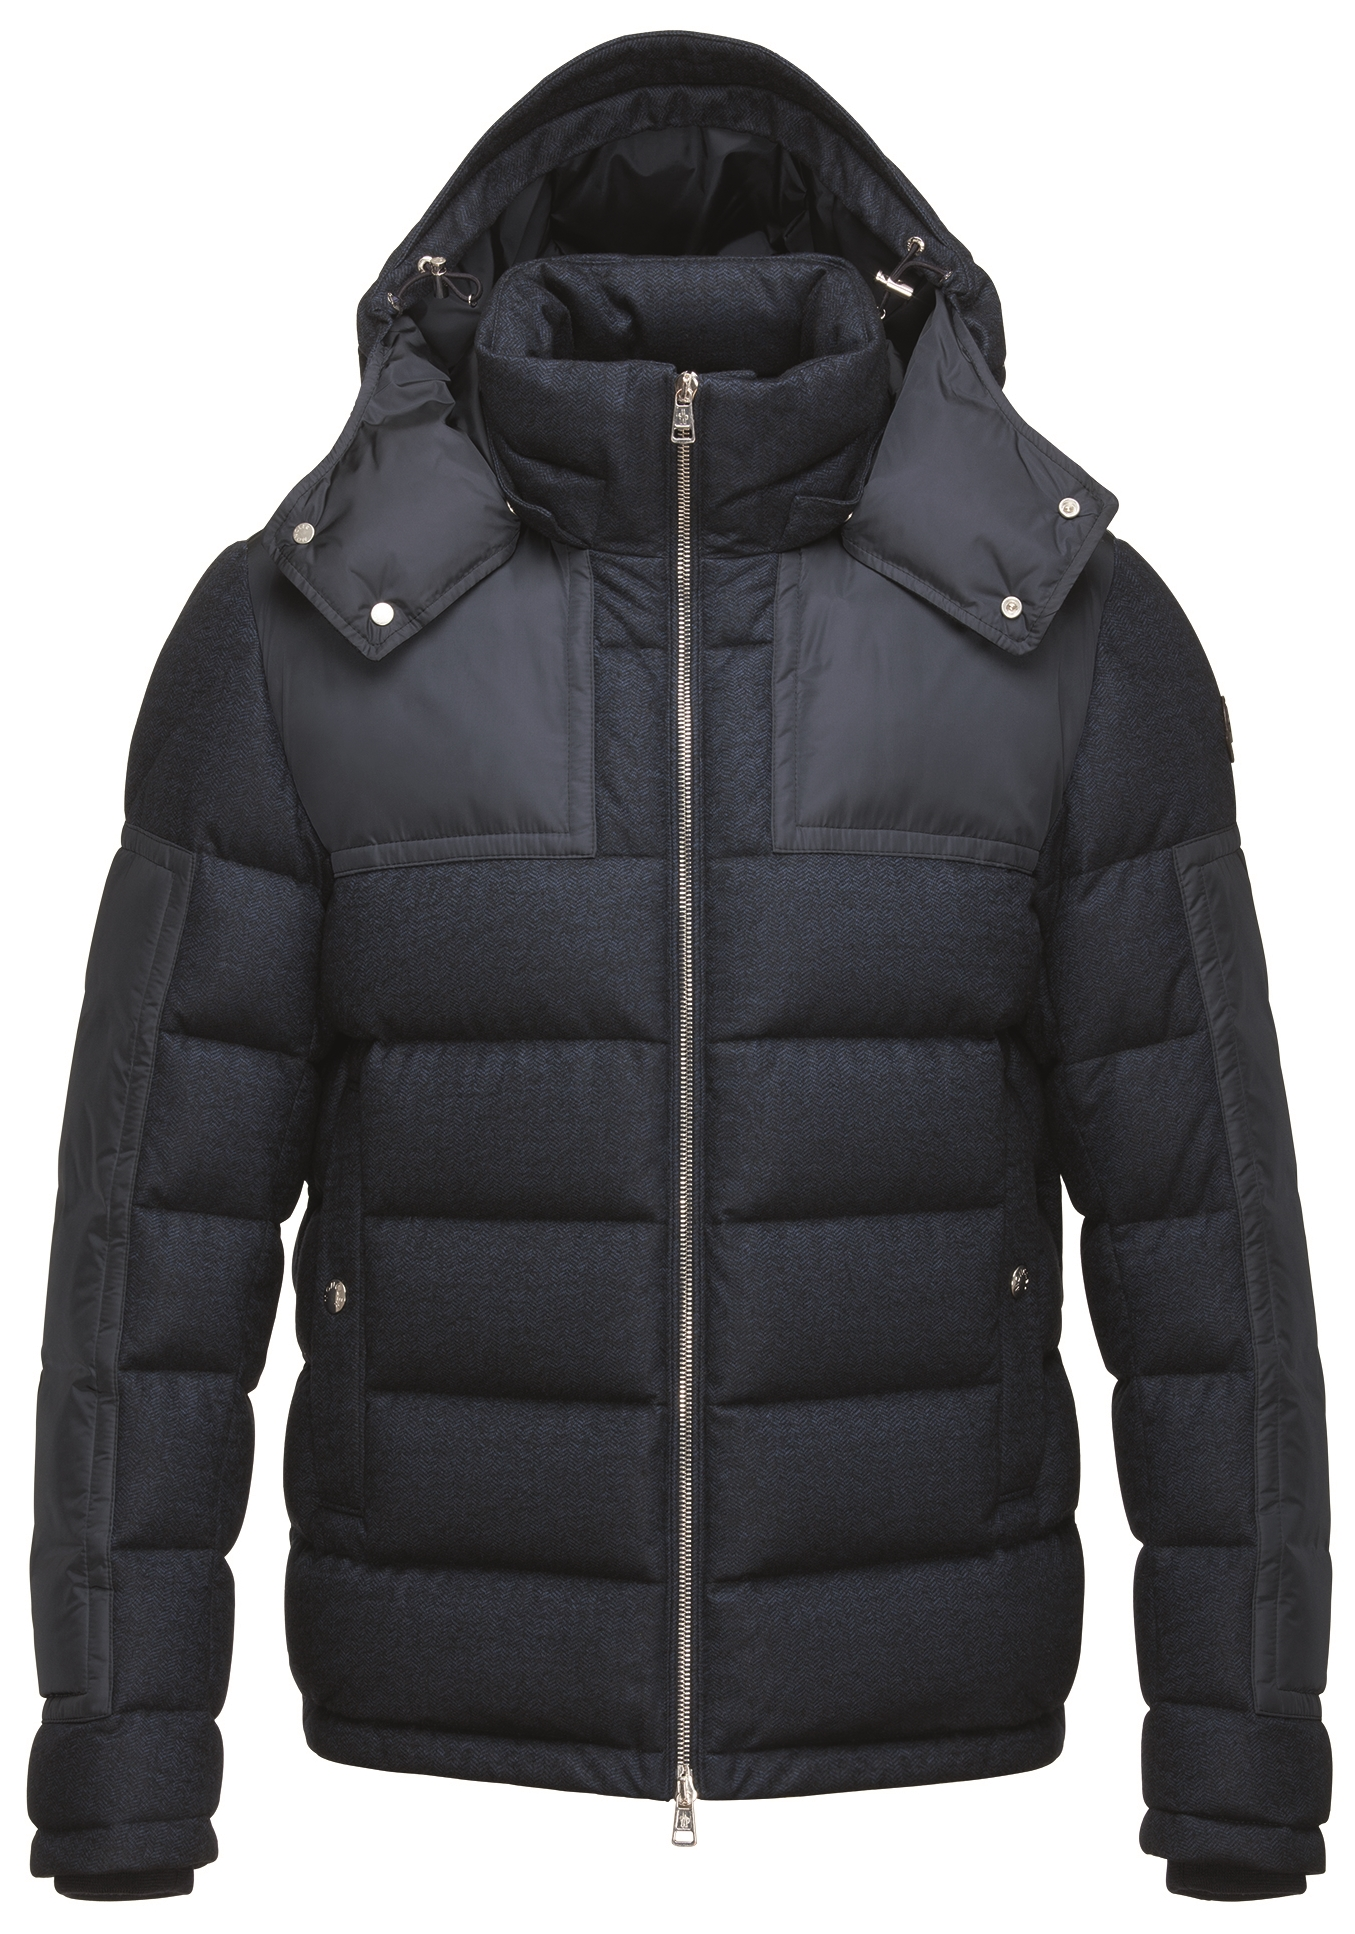 Moncler Blue Wool Down Severac Jacket, $2,075